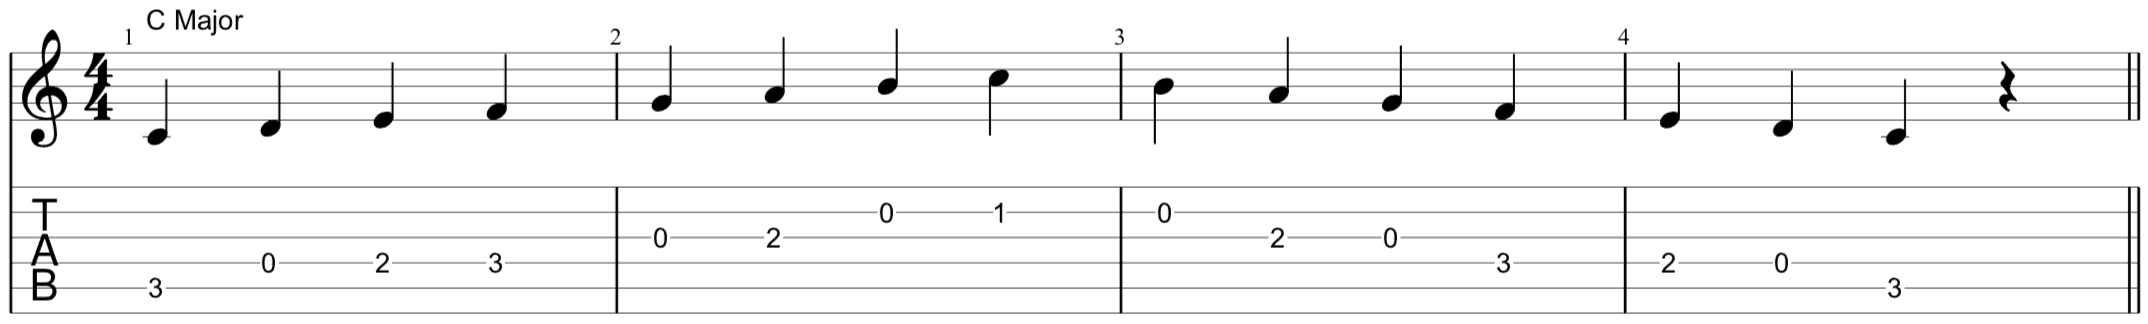 C Major guitar Scale with TAB